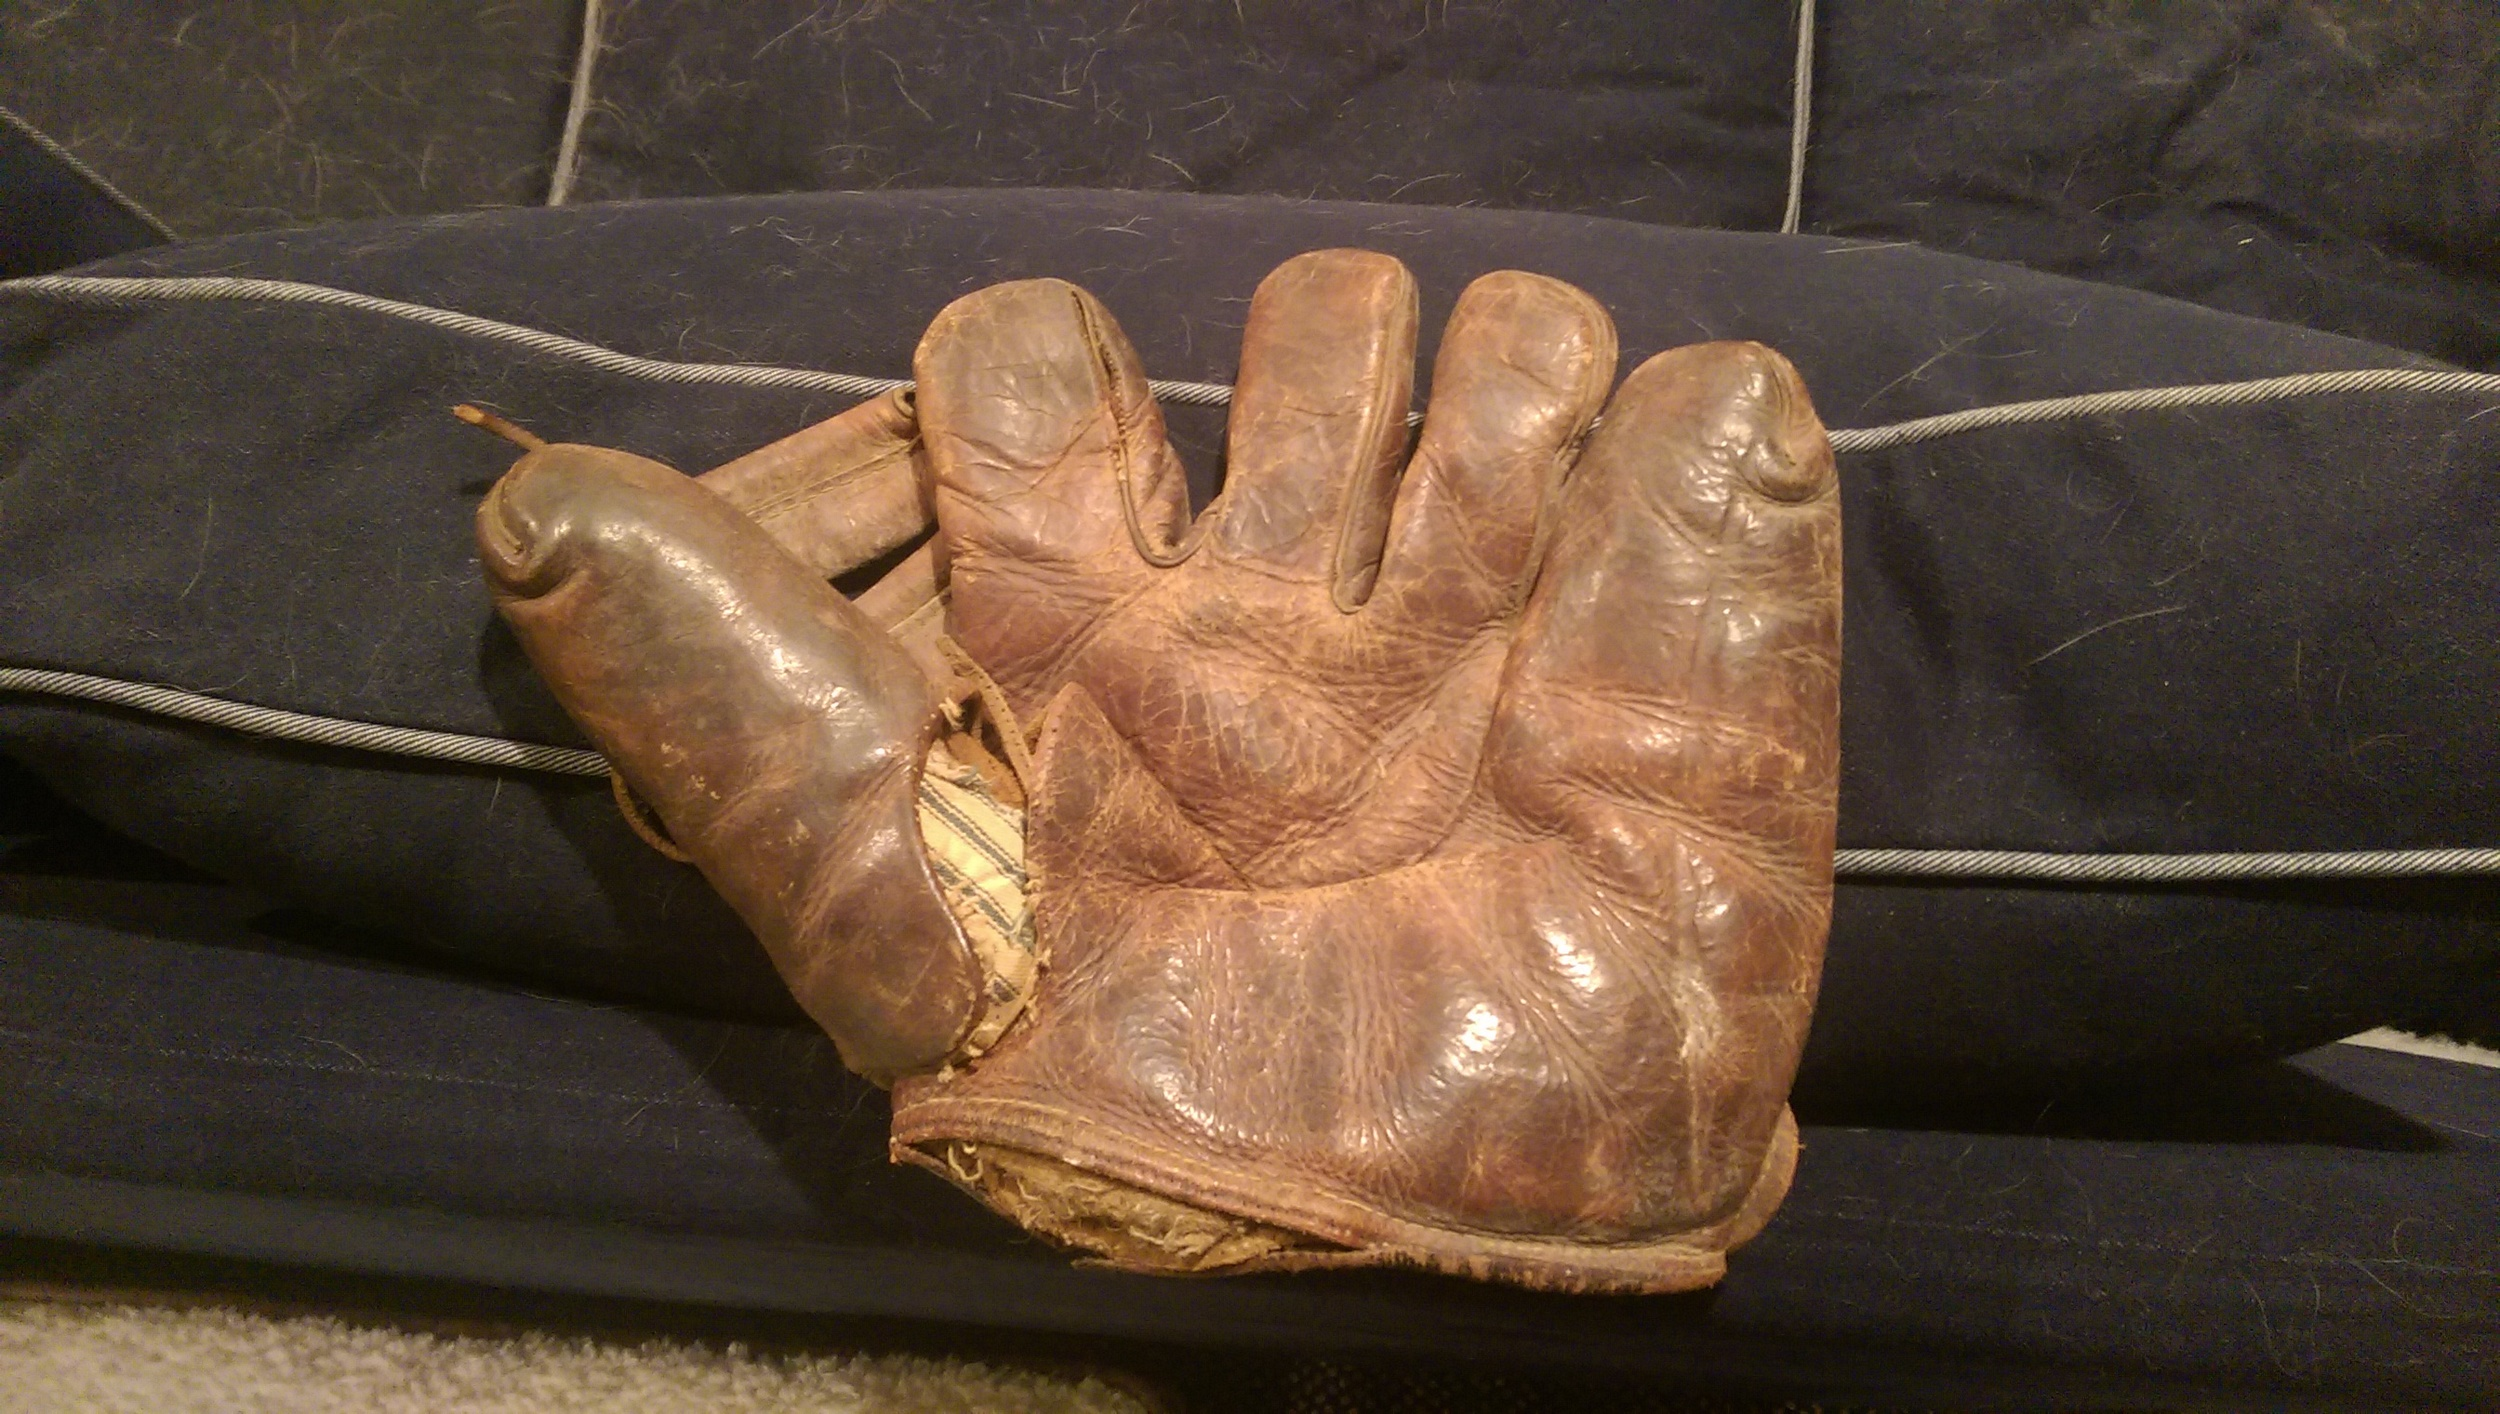 Pop's (my grandfather) baseball glove. One of my prized possessions.